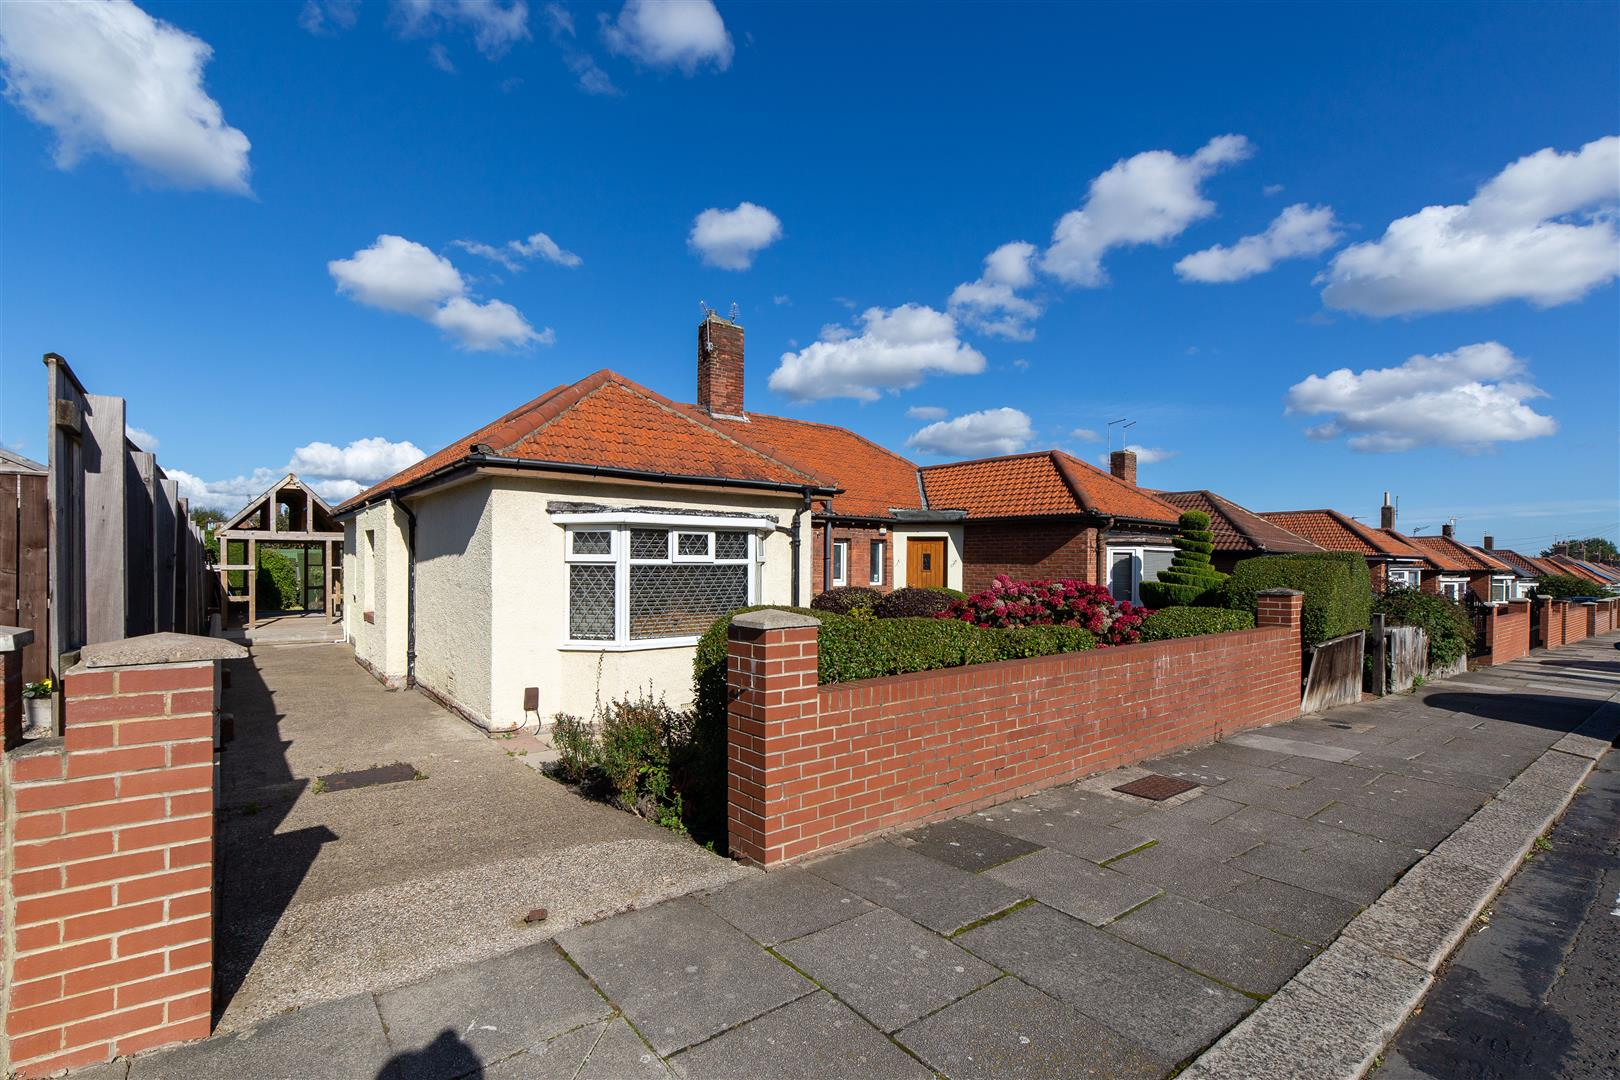 2 bed semi-detached bungalow to rent in Newcastle Upon Tyne, NE6 5TB, NE6